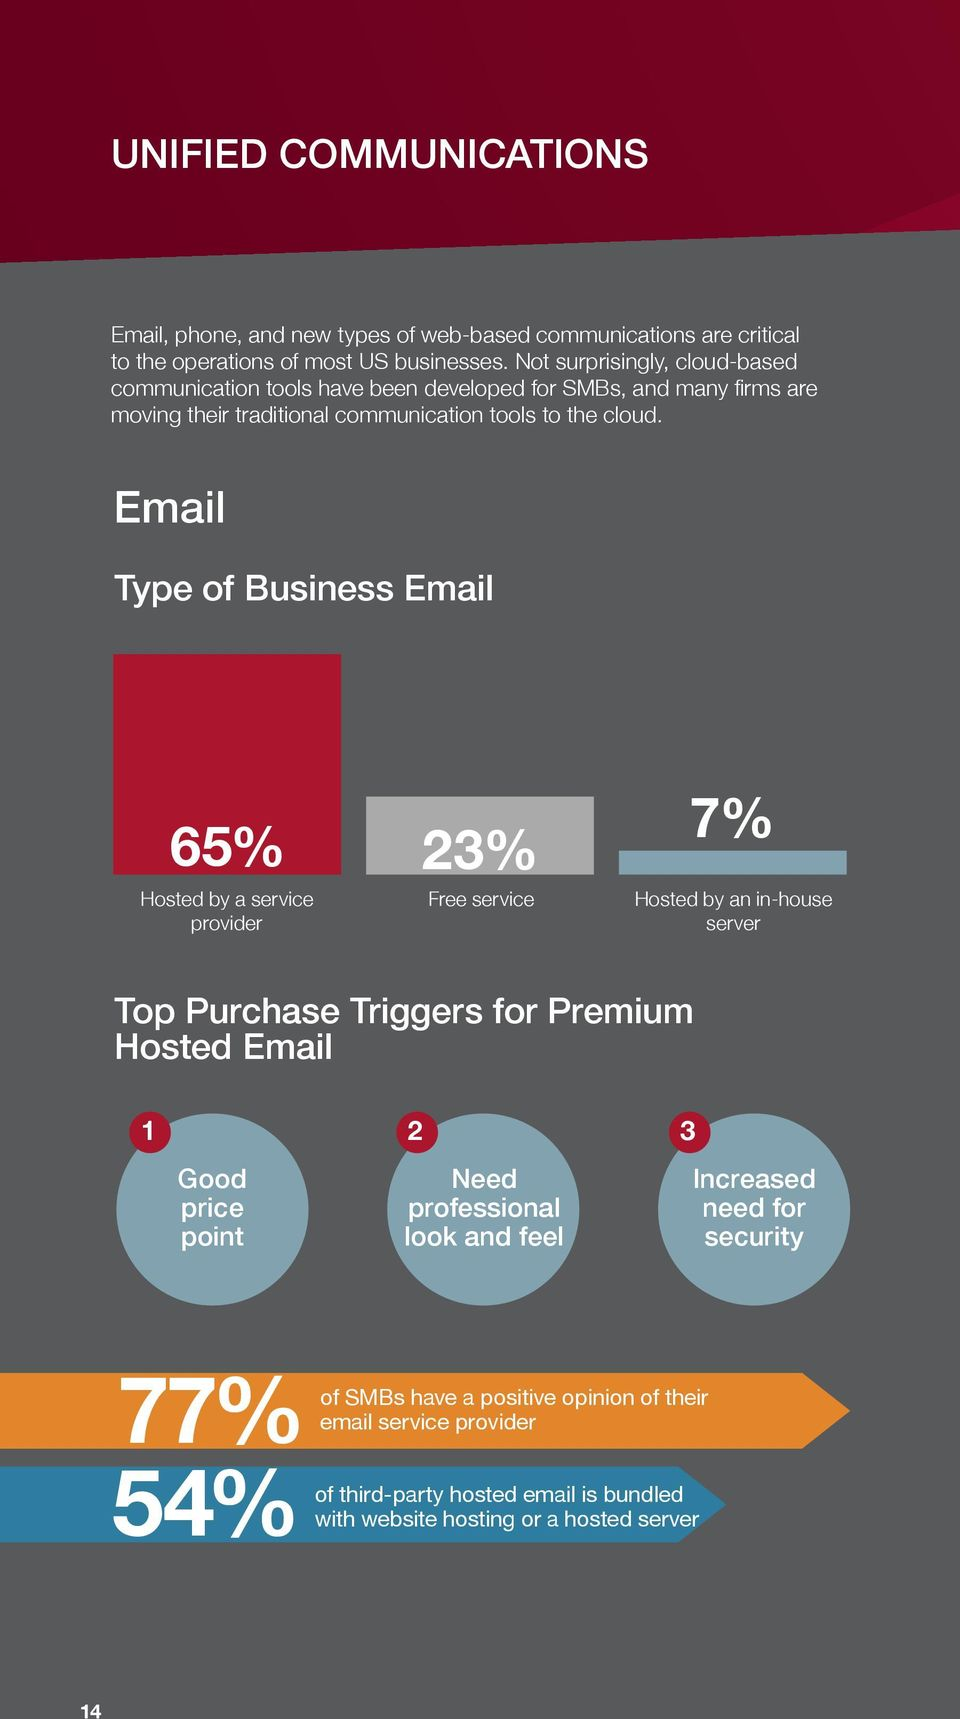 Email Type of Business Email 65% 23% Hosted by a service provider Free service 7% Hosted by an in-house server Top Purchase Triggers for Premium Hosted Email 1 2 3 Good